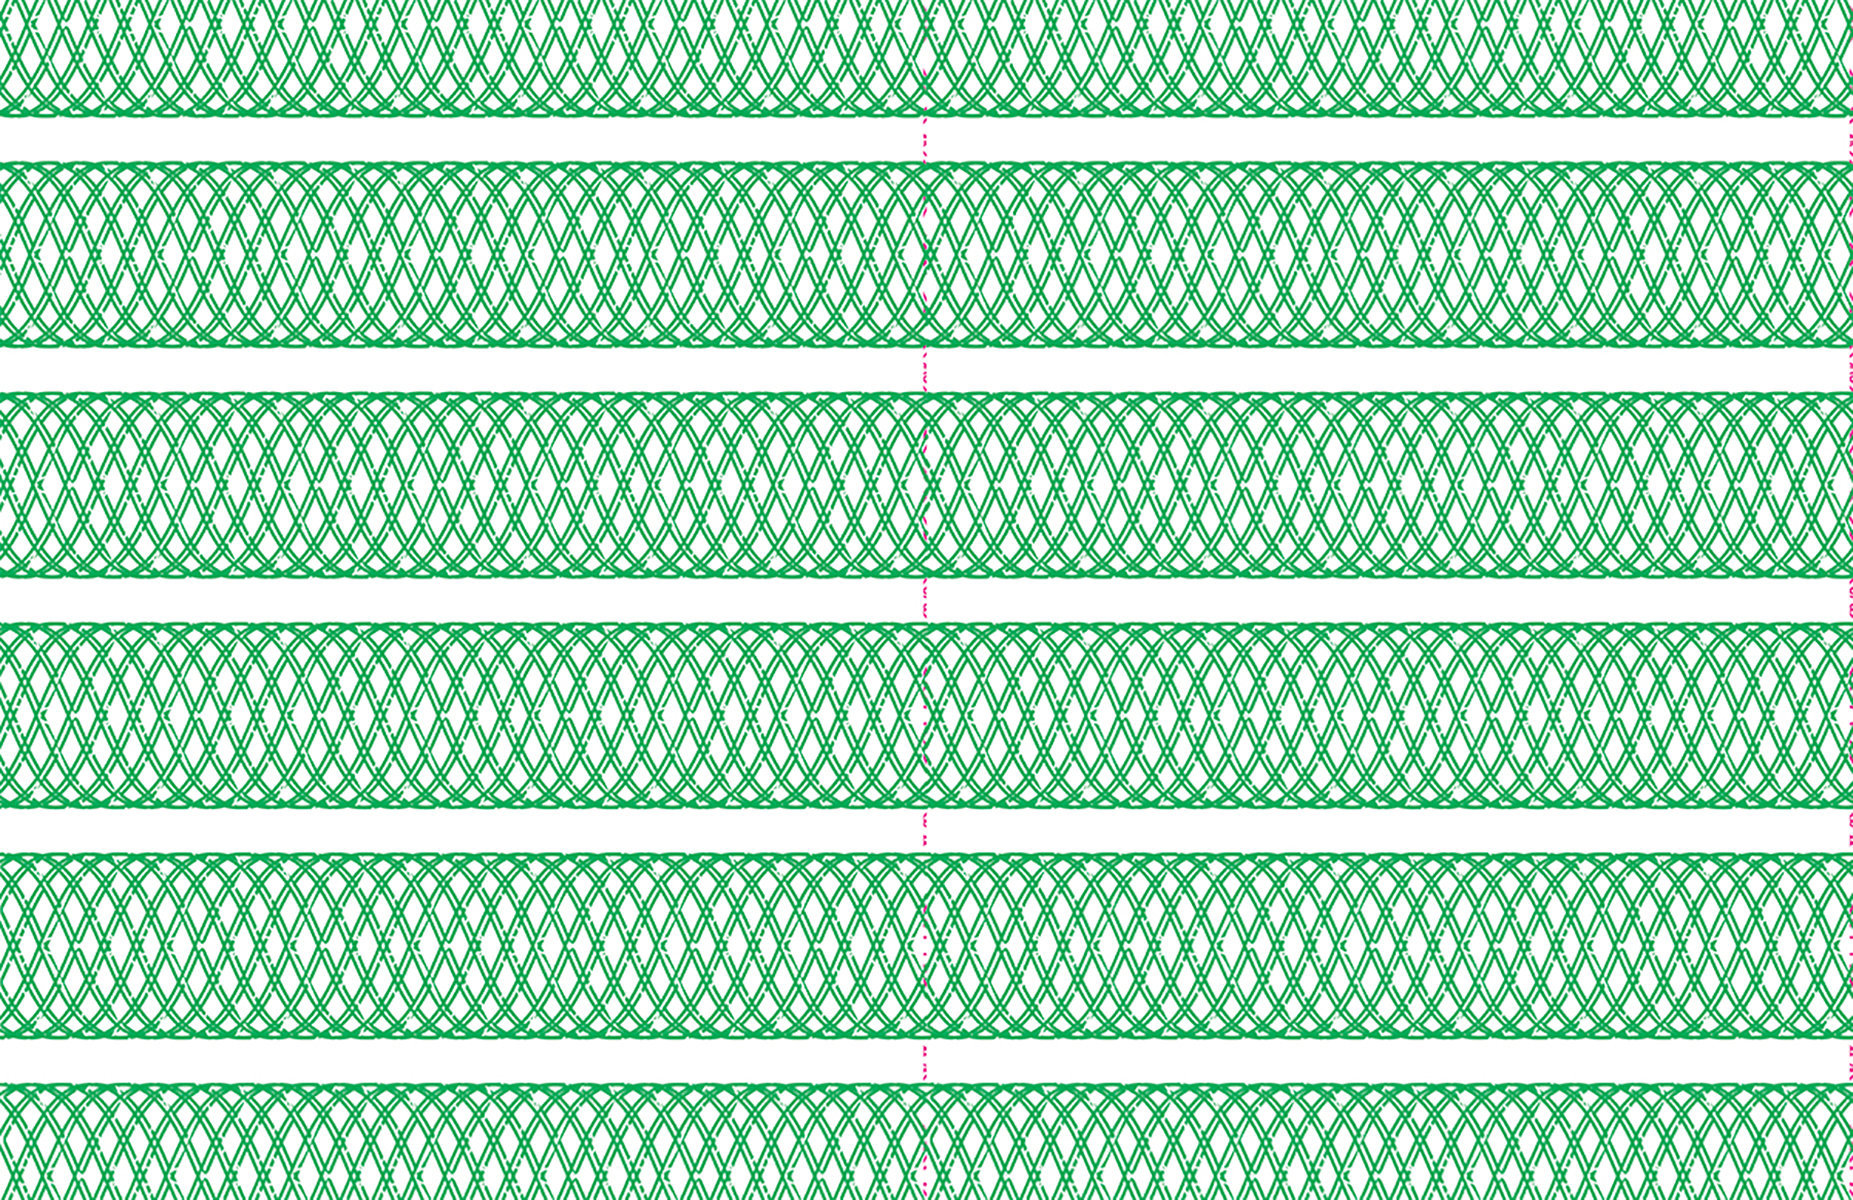 cover_endpapers.jpg